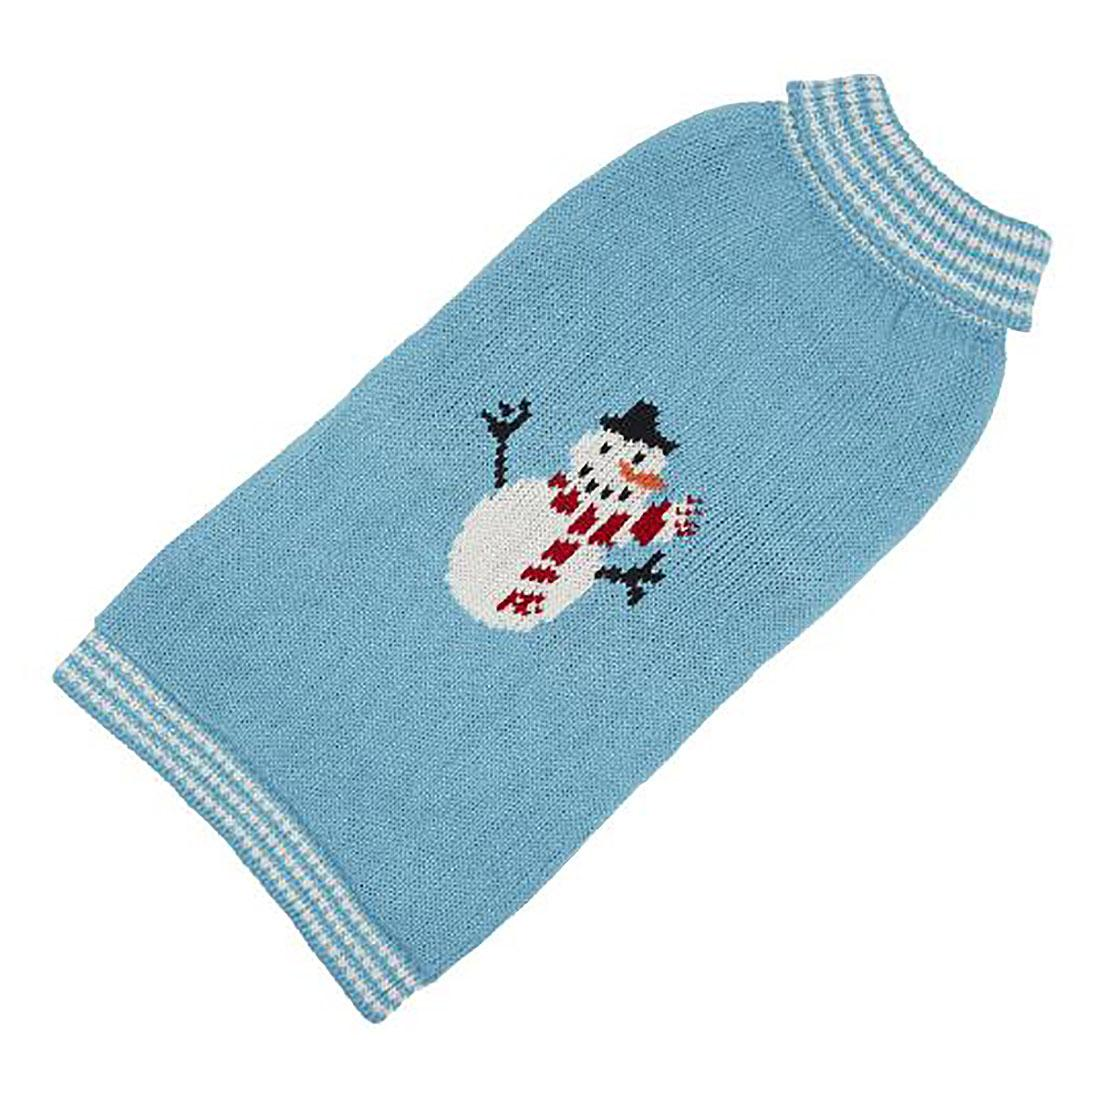 Hand Knit Dog Sweater by Up Country - Snowman